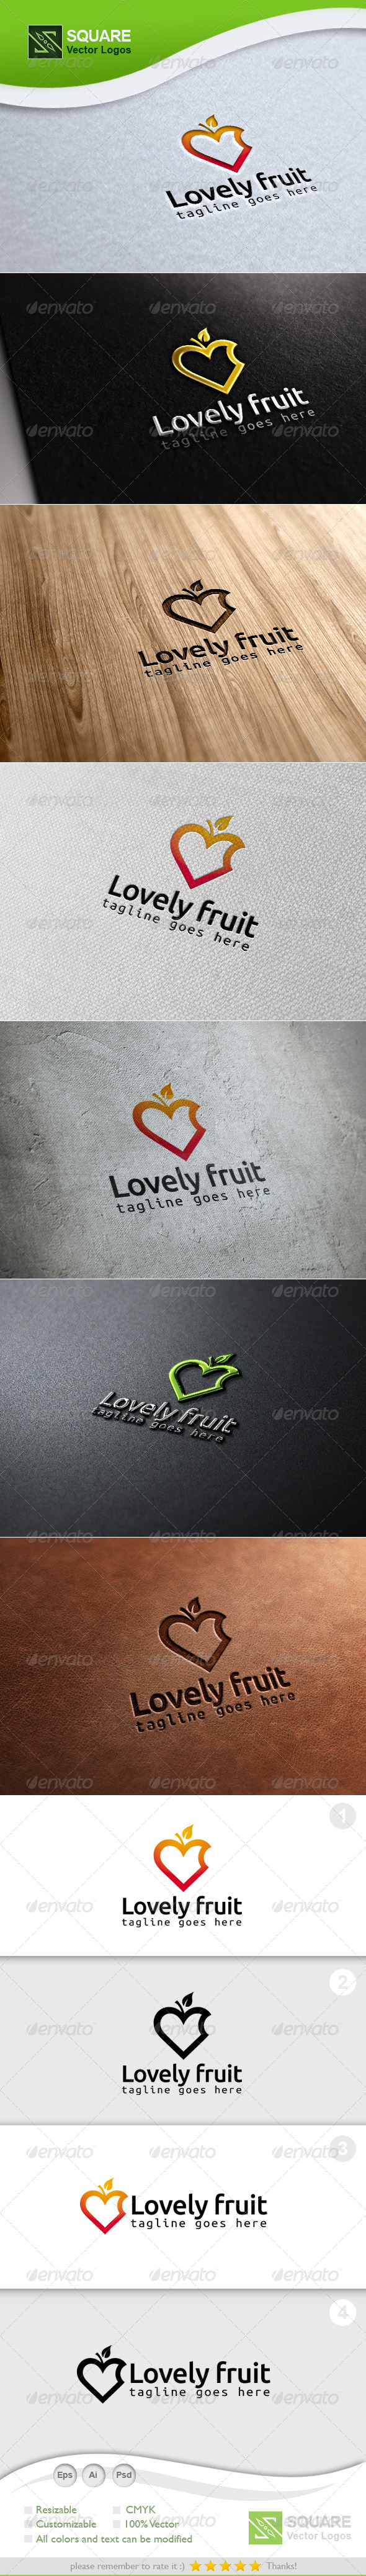 Love, Fruit Vector Logo Template - Symbols Logo Templates